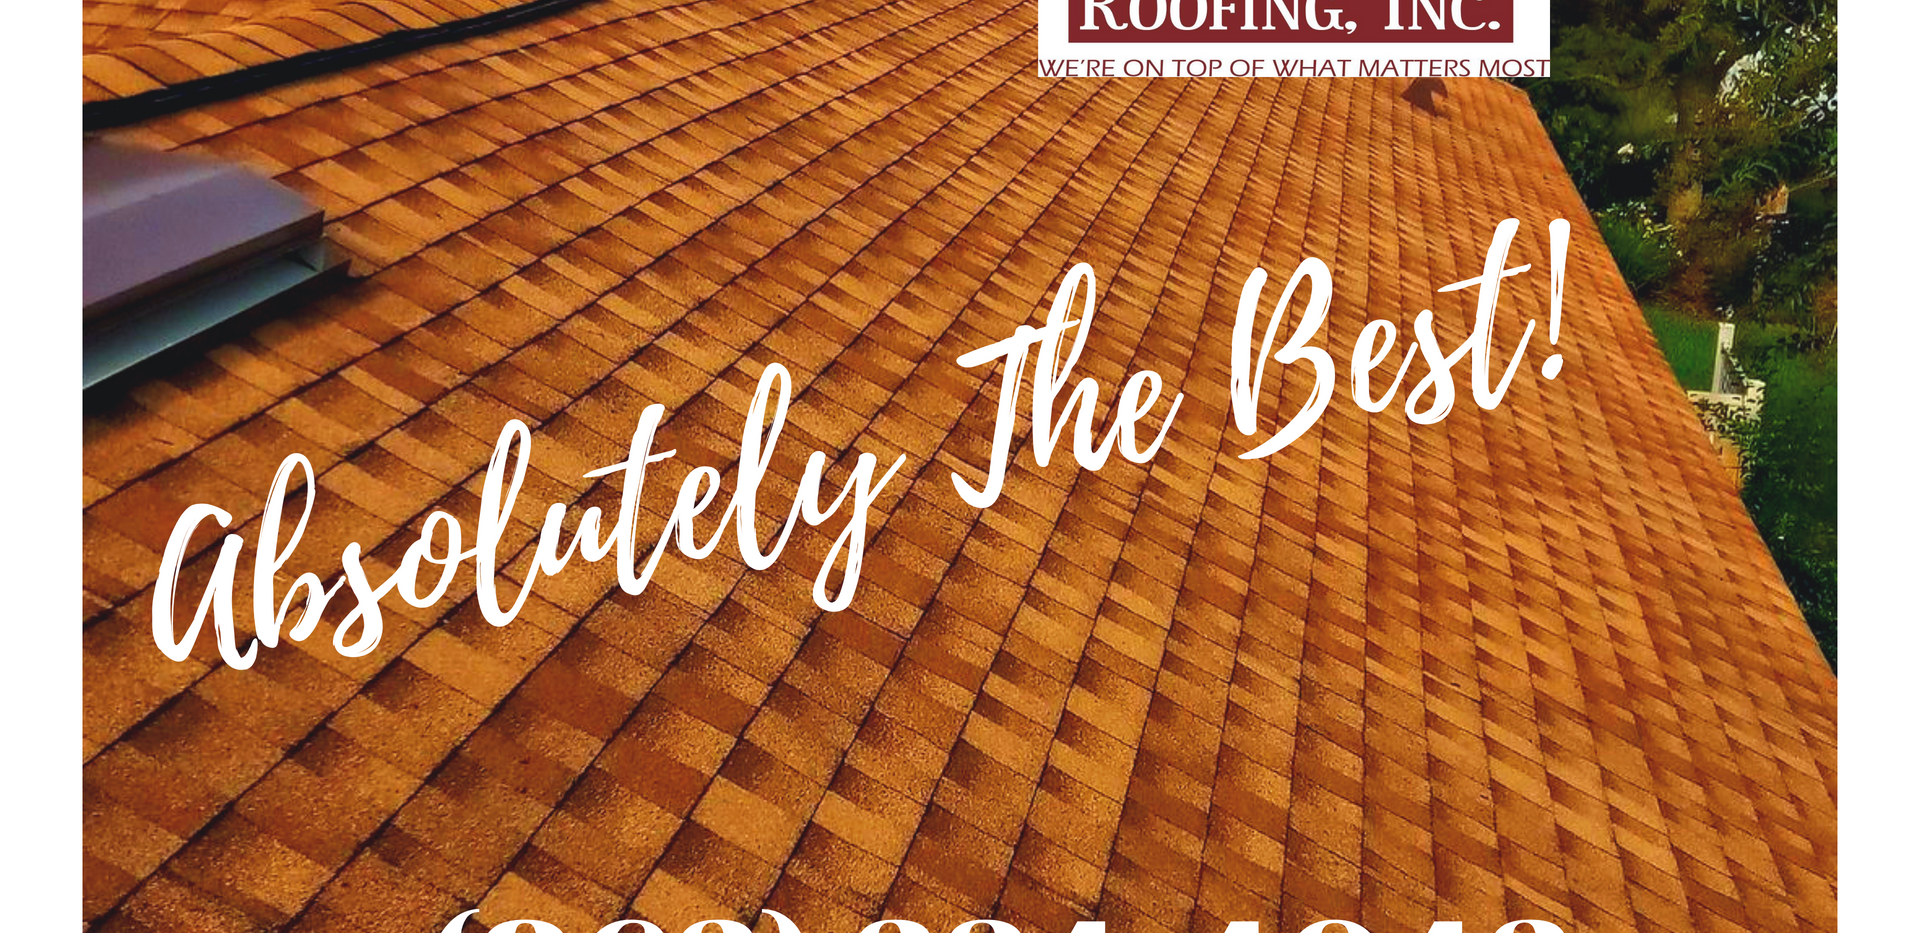 1st ClassRoofing.png